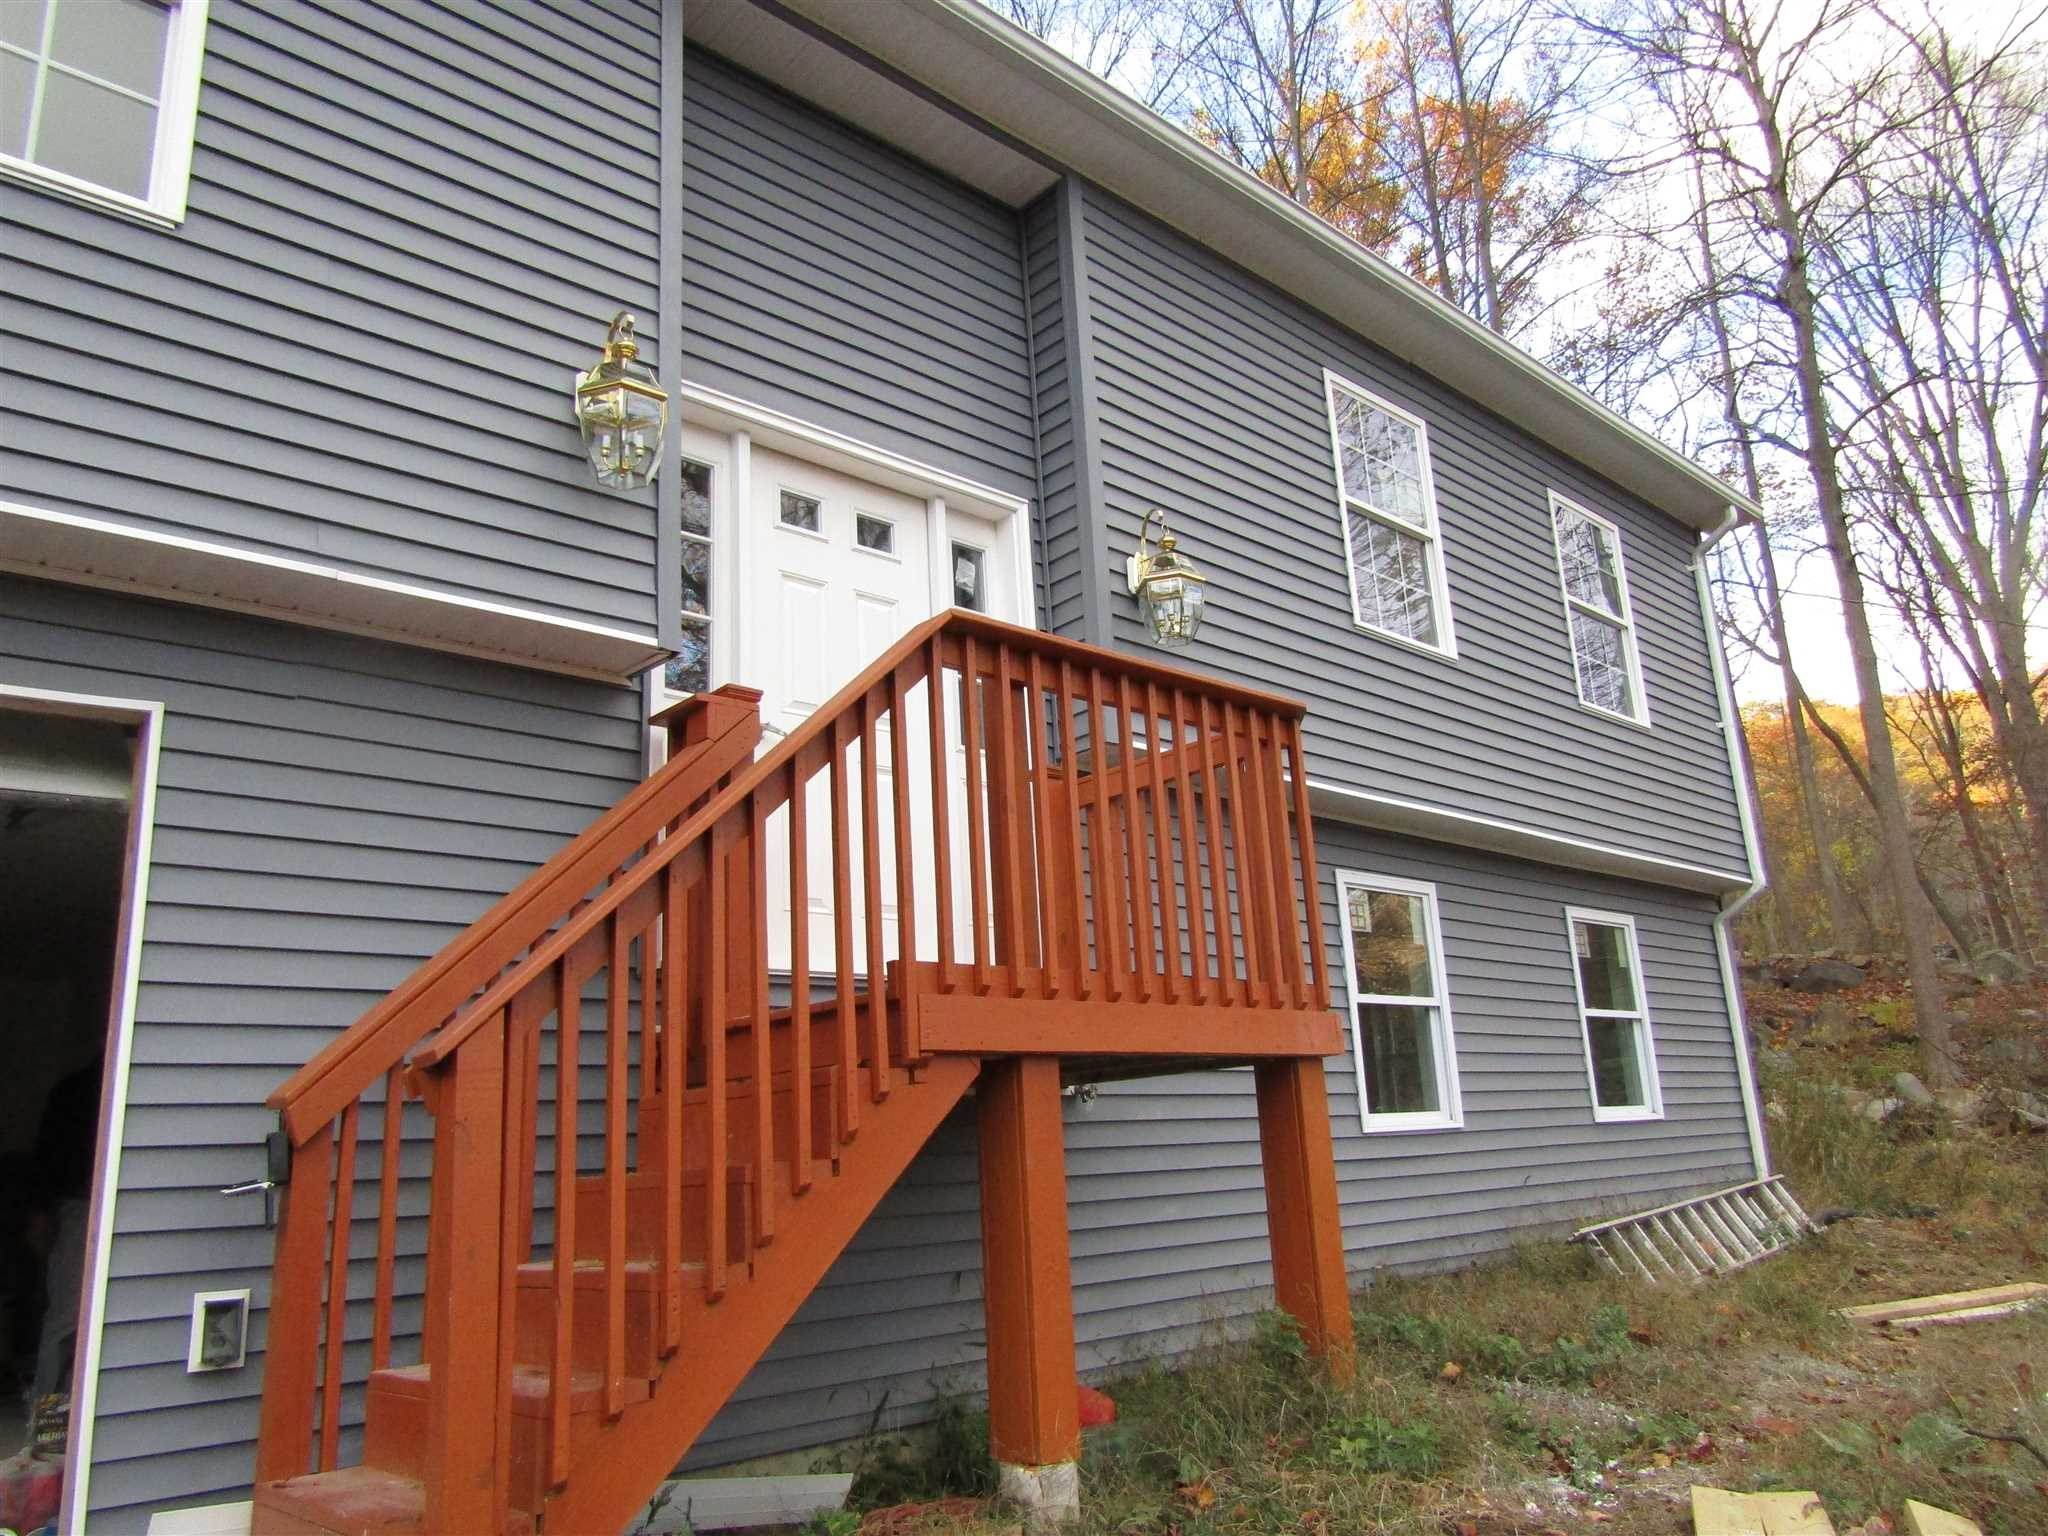 Single Family Home for Sale at 15 OX YOKE 15 OX YOKE Philipstown, New York 10524 United States